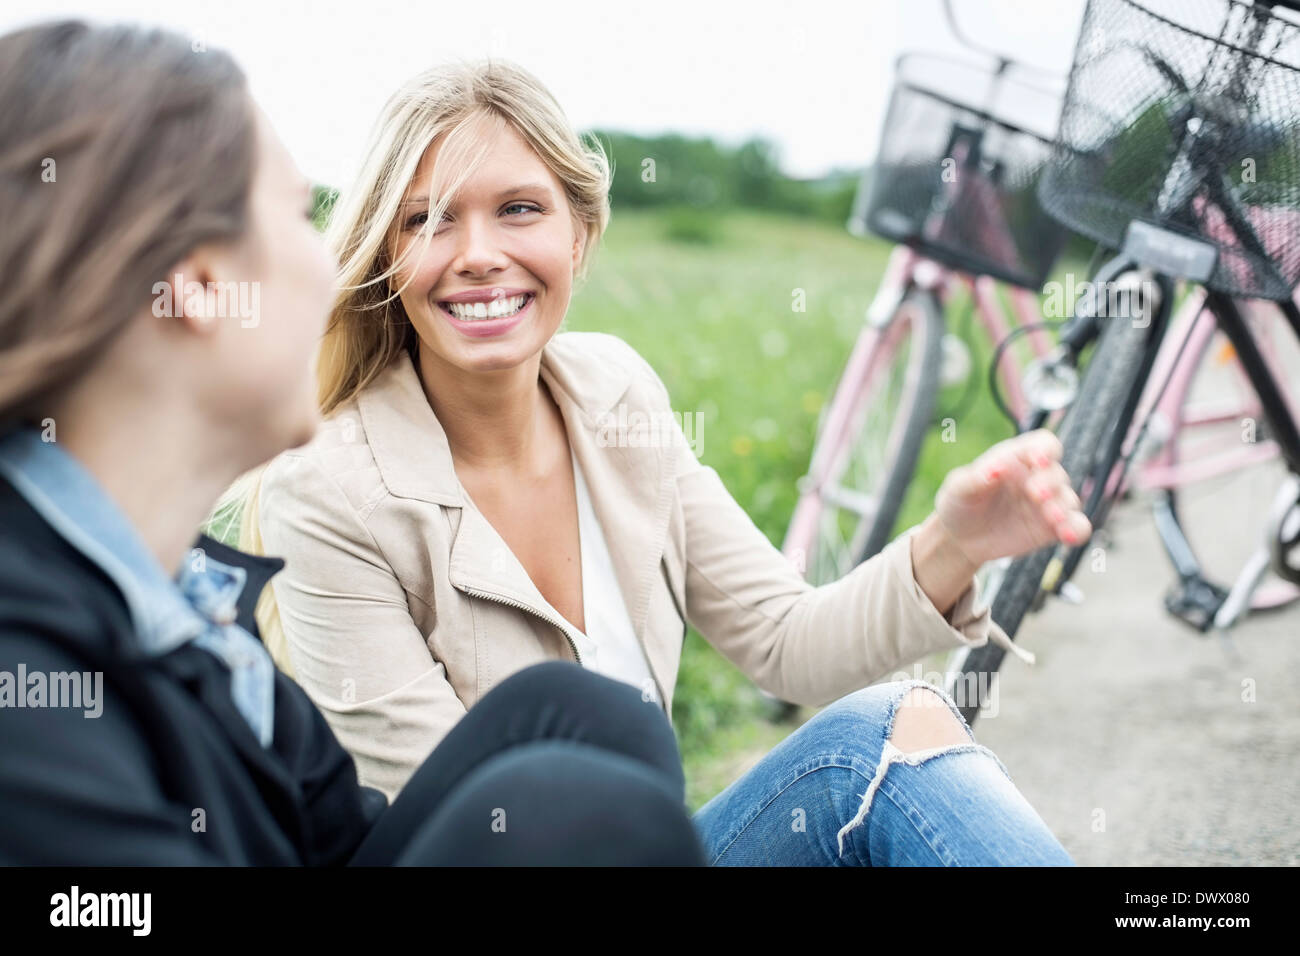 Happy young woman conversing with female friend on country road - Stock Image